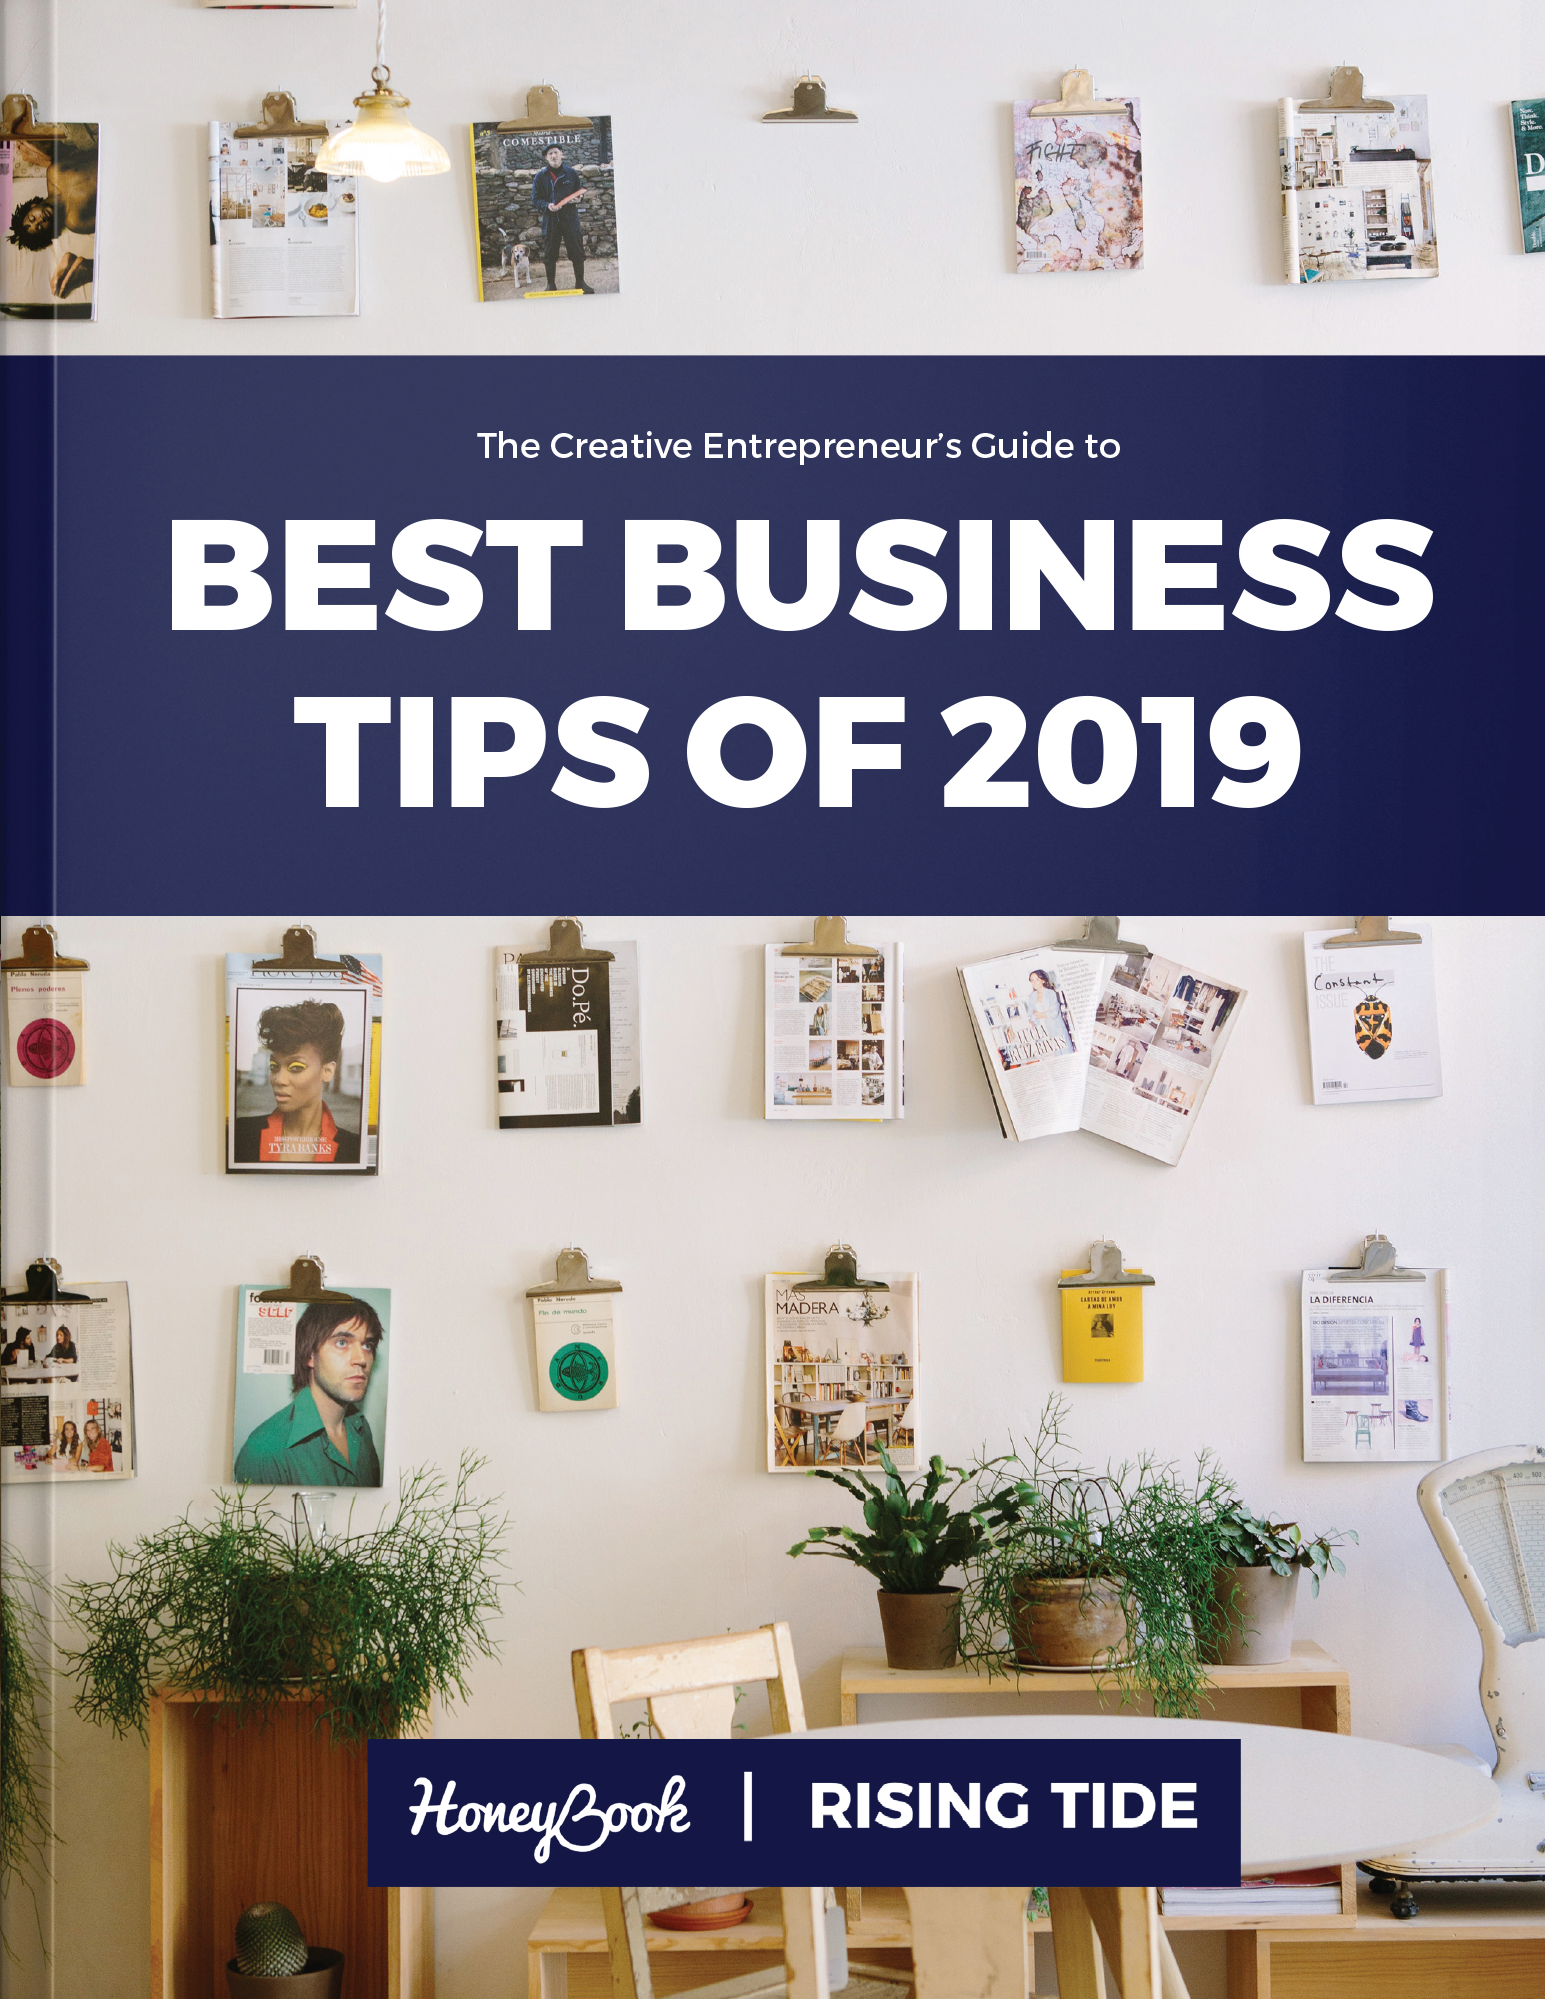 Best Business Tips of 2019